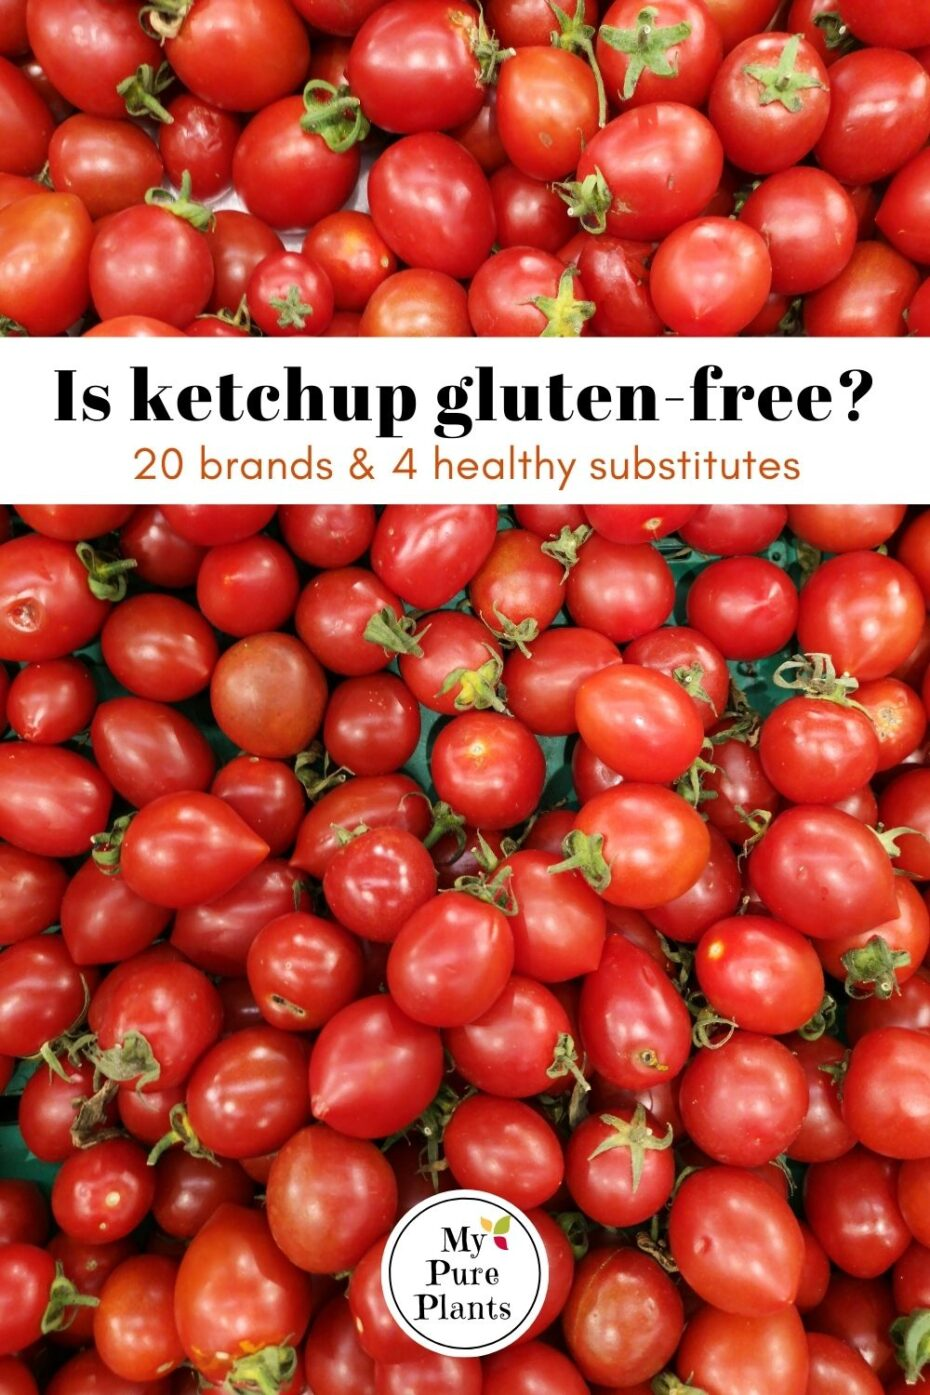 Lots of red tomatoes with a text overlay saying is ketchup gluten-free